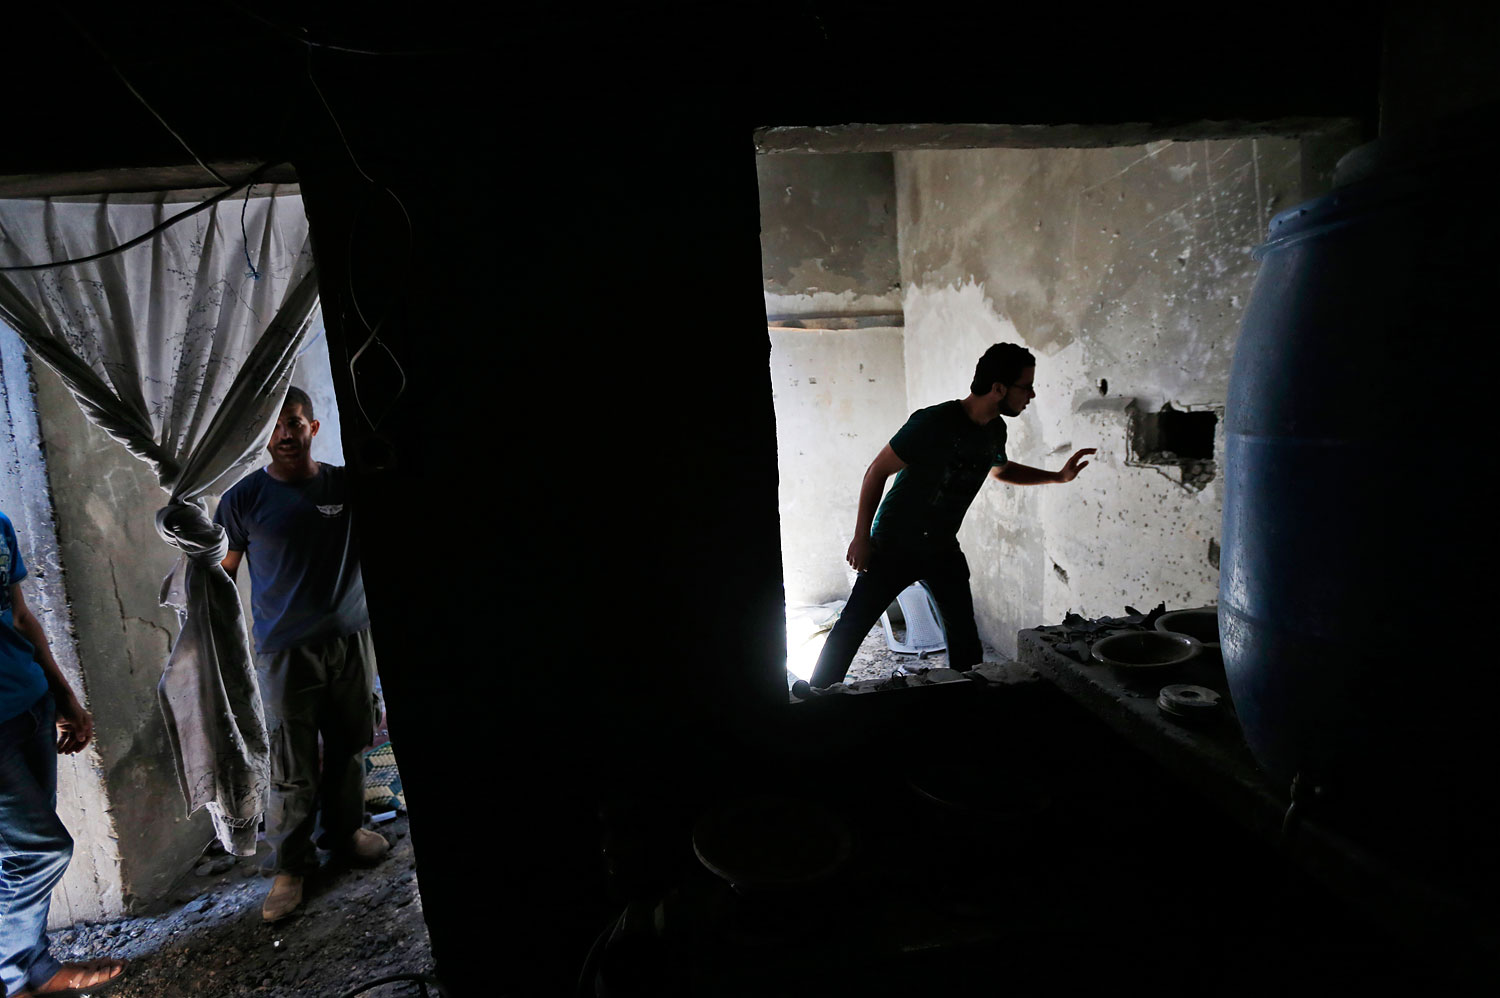 A Palestinian inspects a hole made by an Israeli strike at the damaged Inteiz family house in the Shajaiyeh neighborhood of Gaza City, northern Gaza Strip, July 18, 2014.